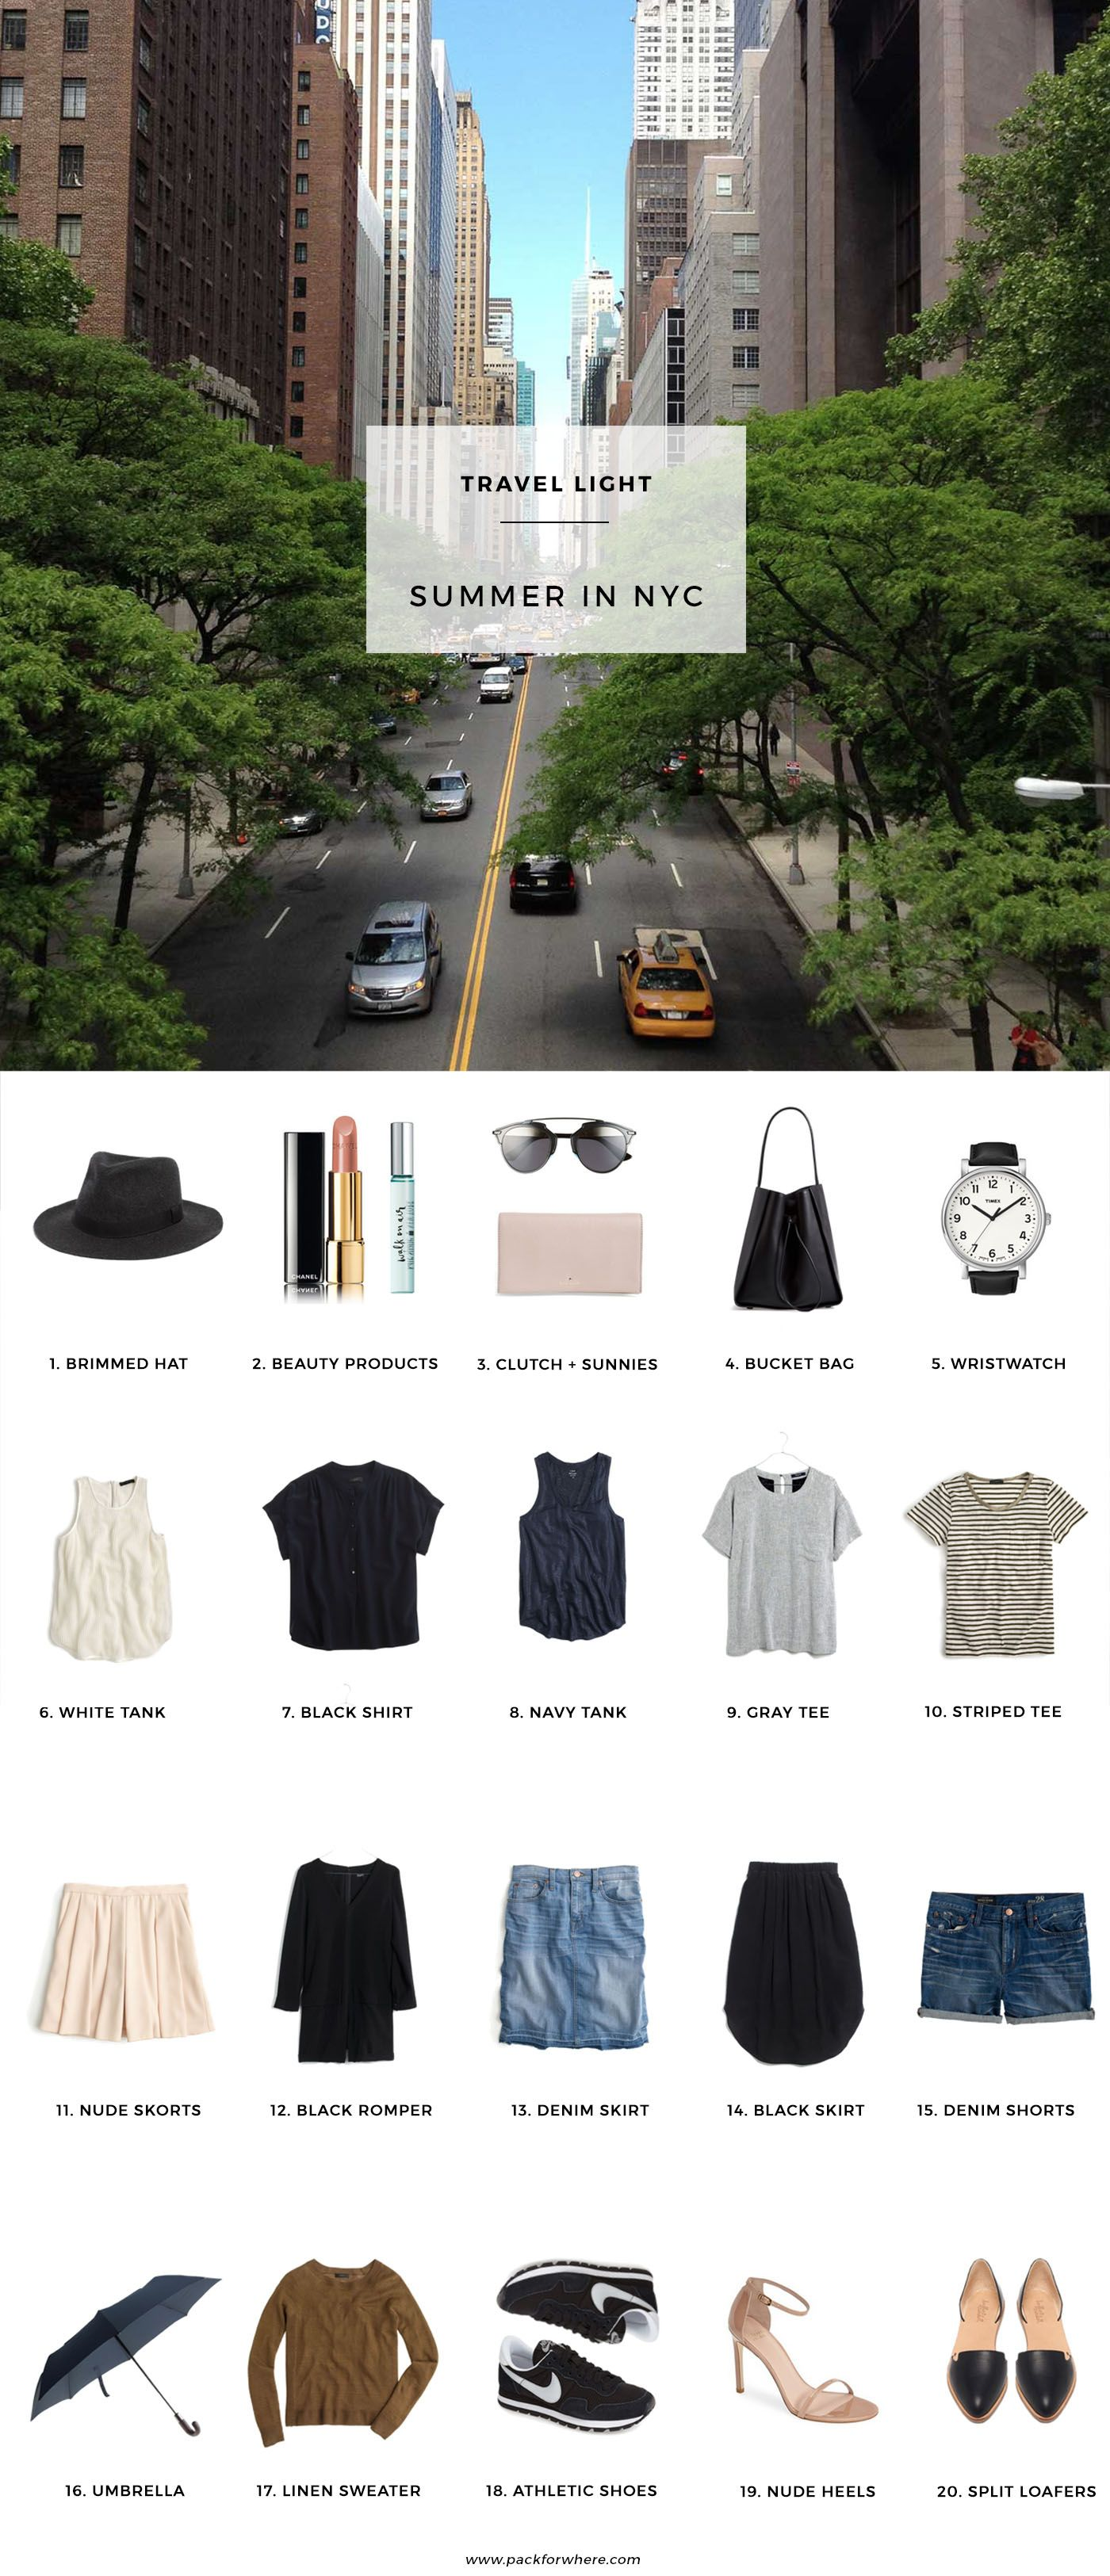 275ca9639b Pack for Summer in NYC, includes shoppable packing list and outfits. Fits  in a carry-on!